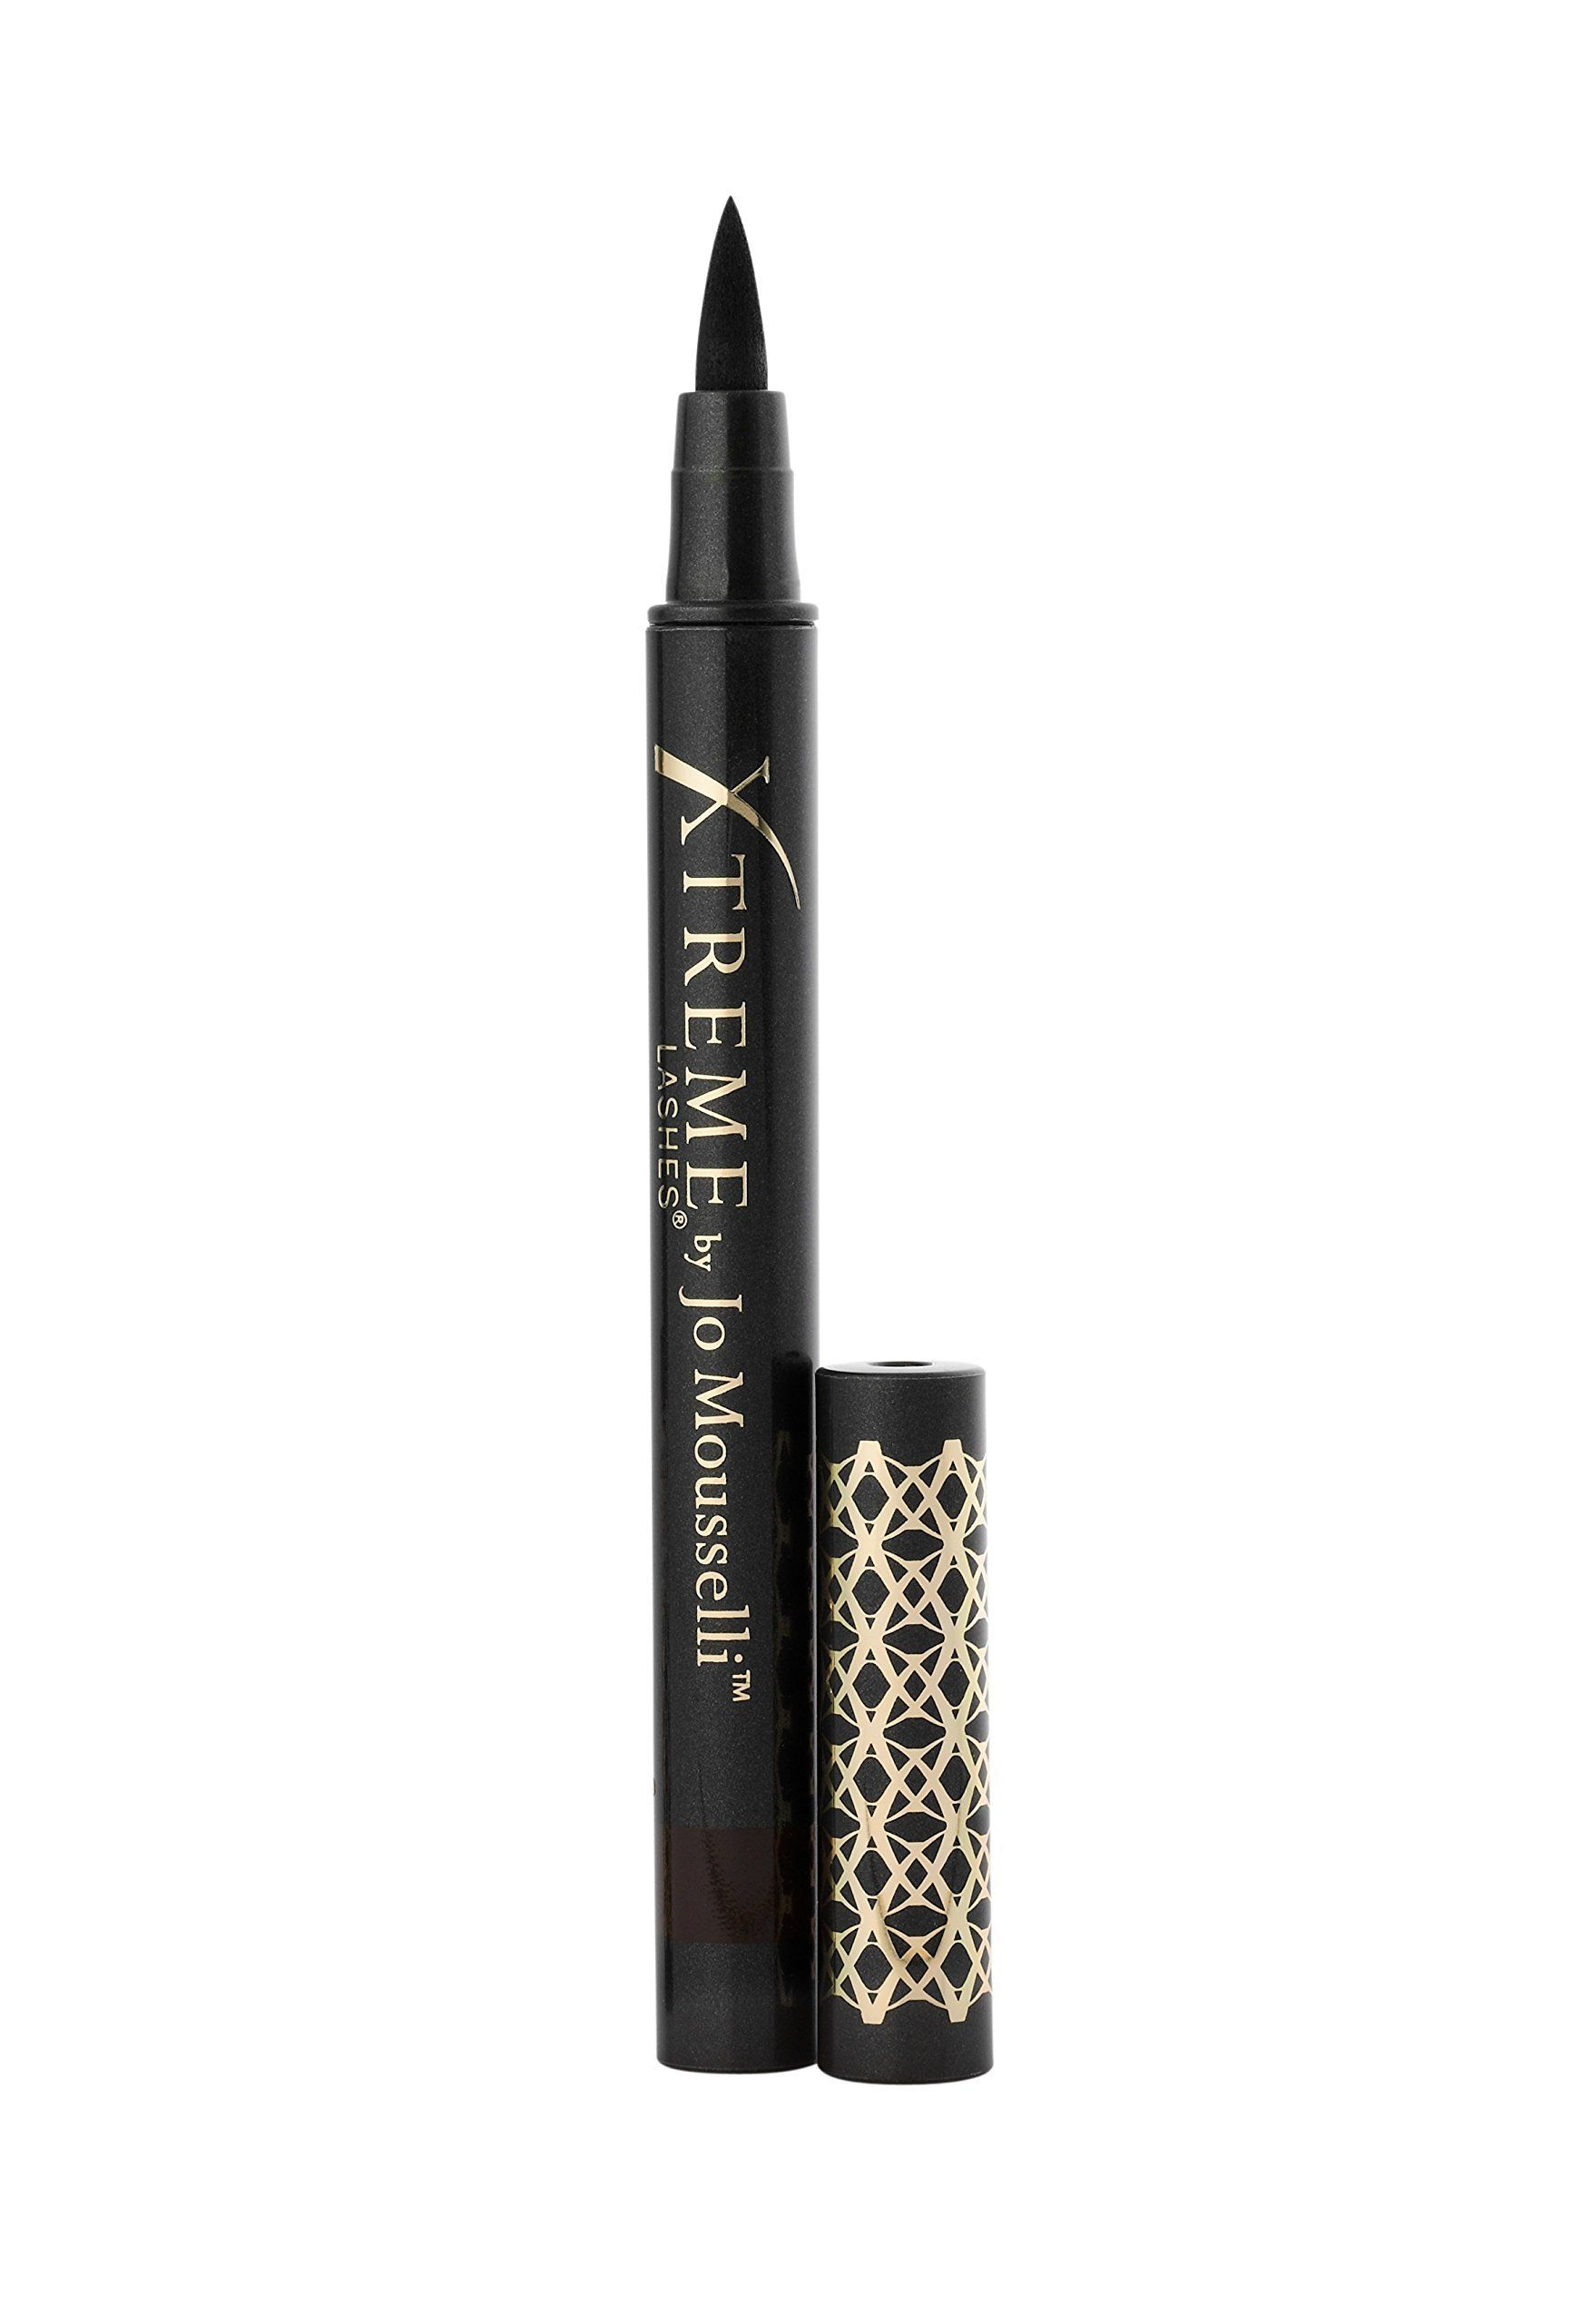 Xtreme Lashes Long Lasting Brow Pen in 2020 Xtreme